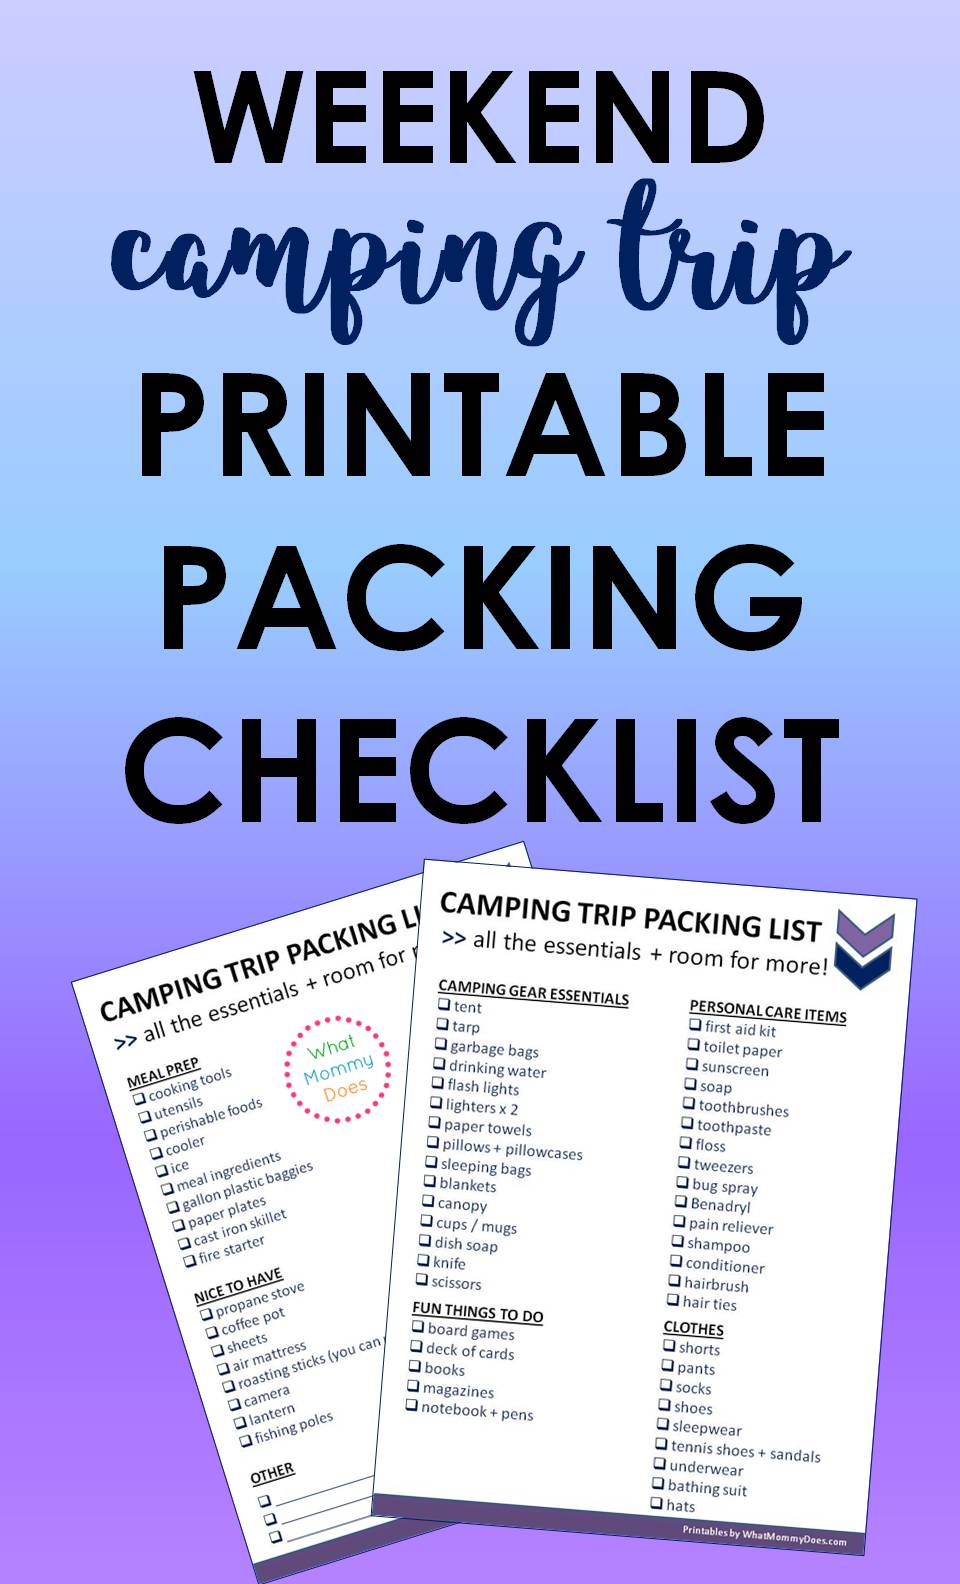 I'm so glad I found this camping packing checklist! It made preparing for our weekend camping trip so much easier!! I'm not even kidding. I kept getting worried that I wouldn't know what to bring for the kids or how we'd survive the weekend in a tent together. This girl makes it sound so simple & straightforward. Highly recommend this list of essentials. You can always add extra stuff yourself later, but it's nice to know what you need / don't need to take. | tent camping newbie, camping with kids, camping ideas